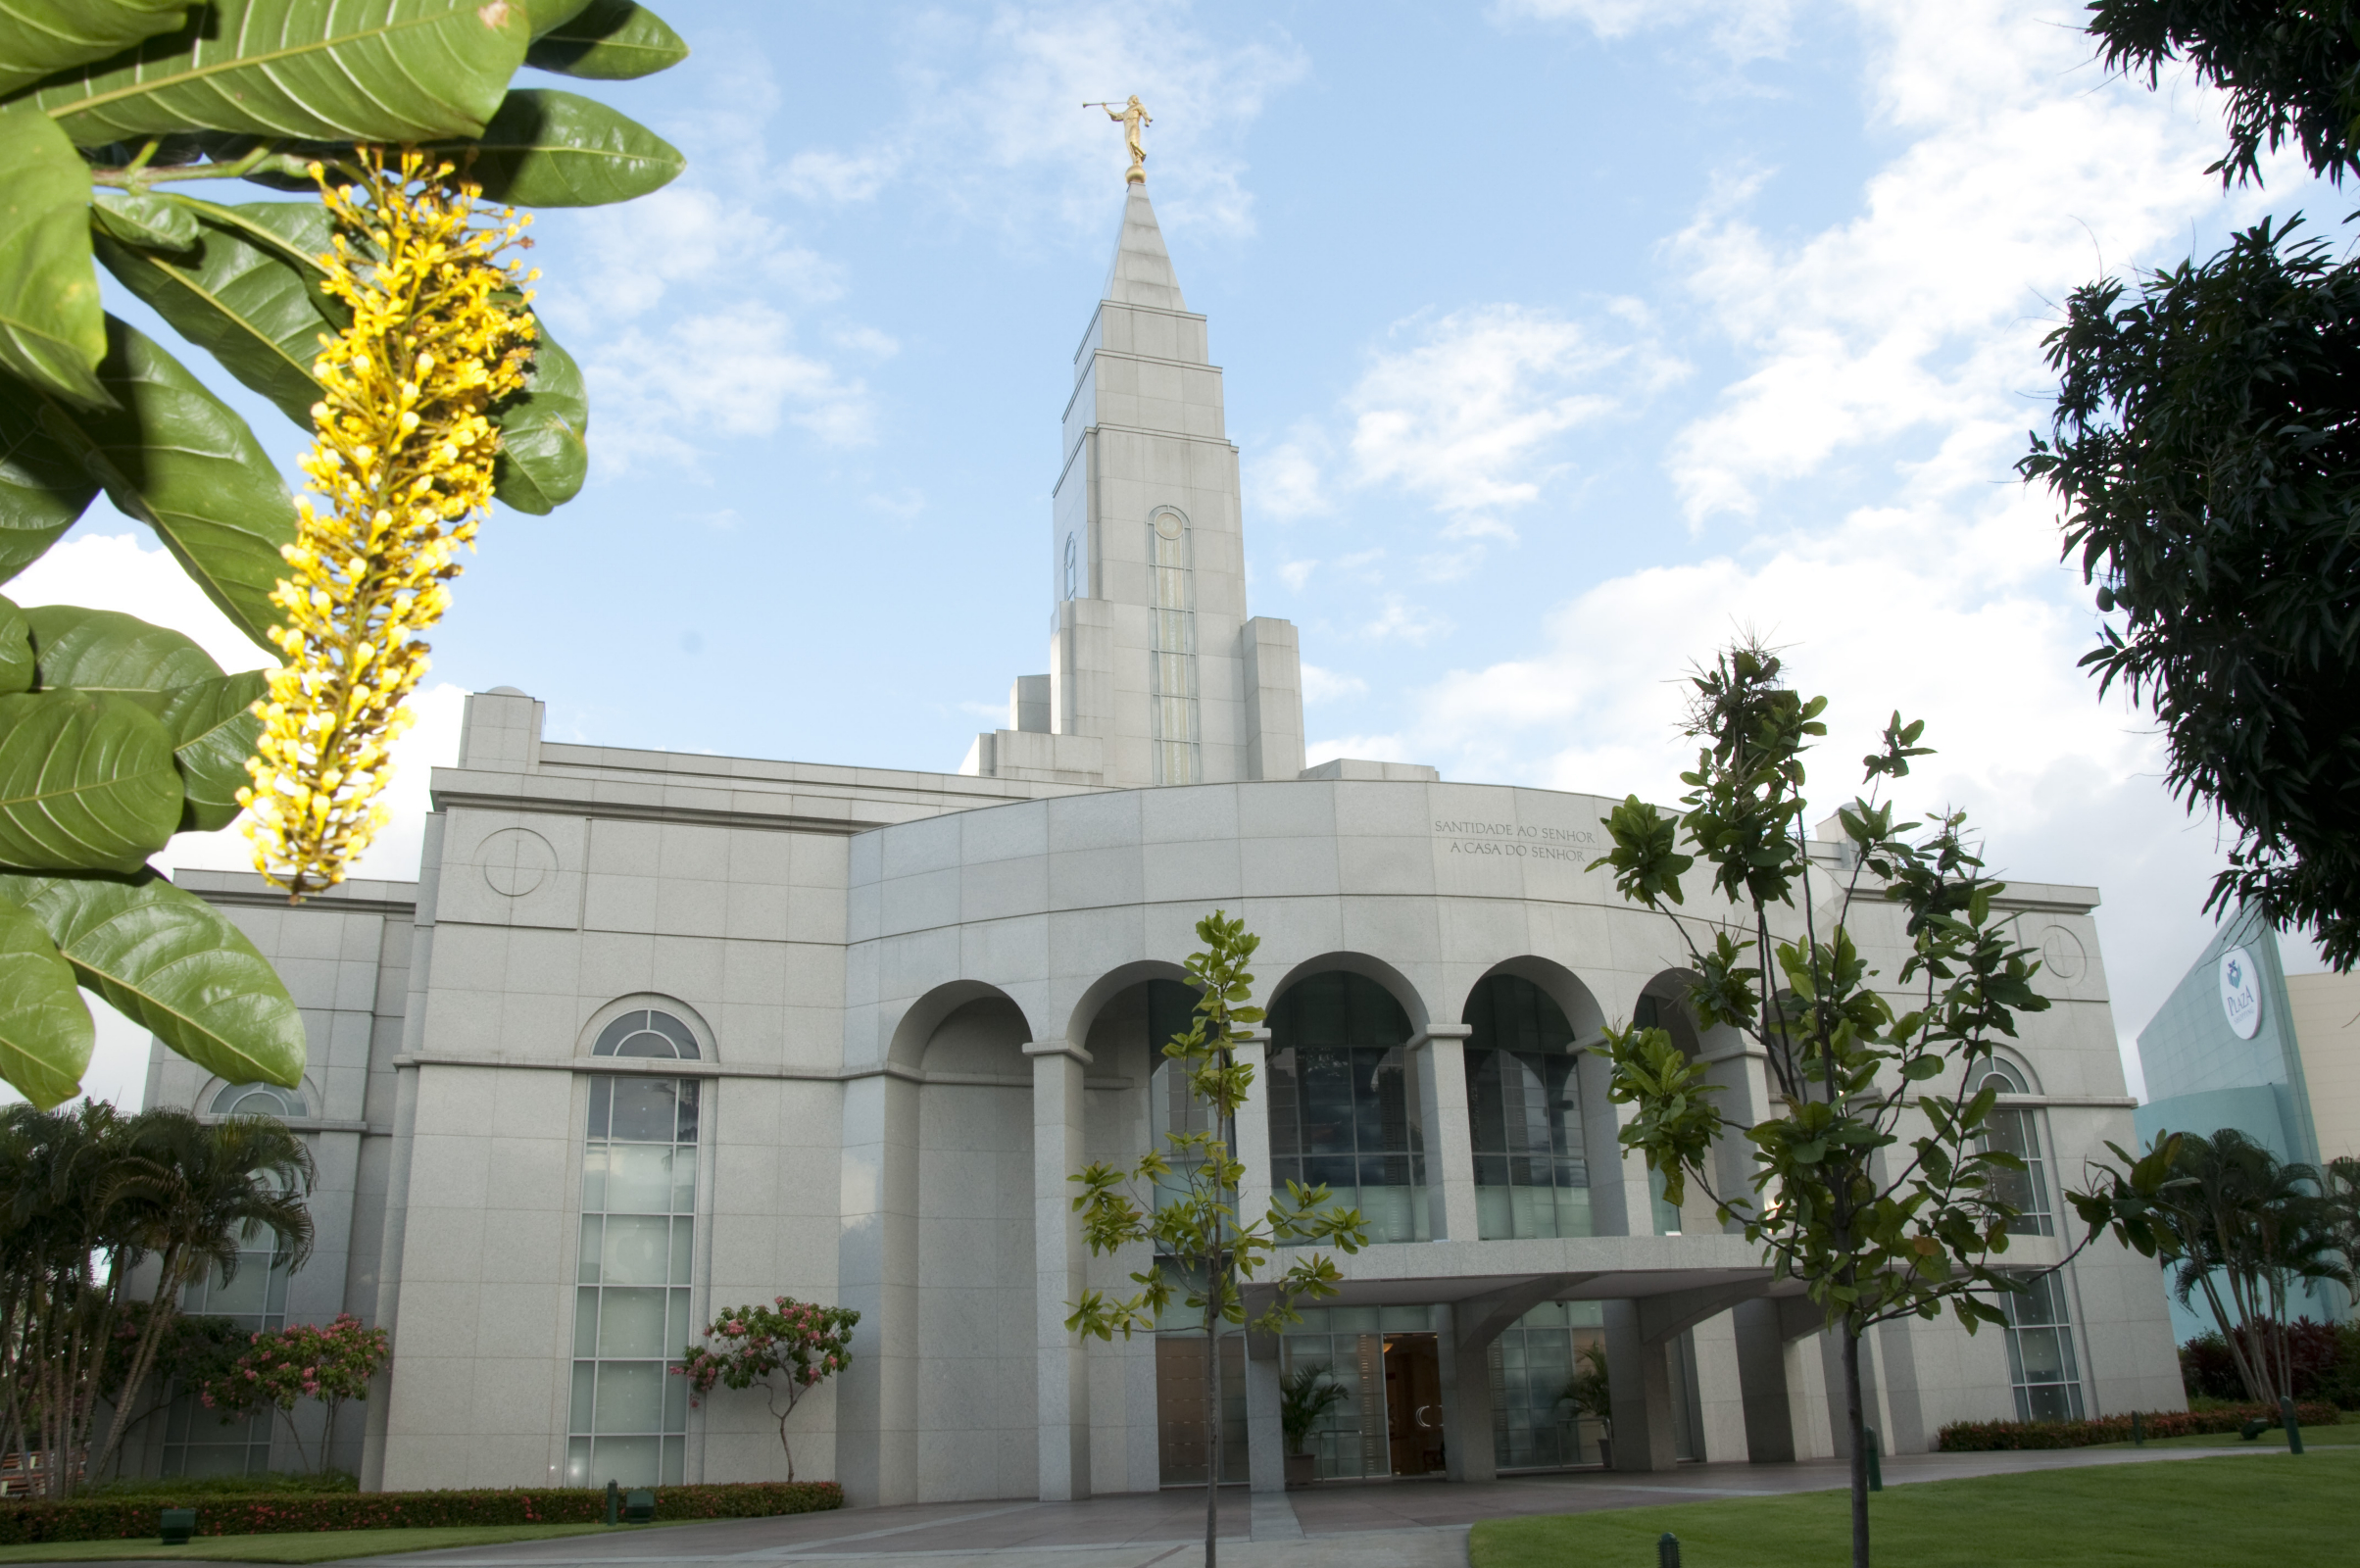 The Church of Jesus Christ of Latter-day Saints 30th Ave Longview WA | 1721 30th Ave, Longview, WA, 98632 | +1 (360) 578-0641